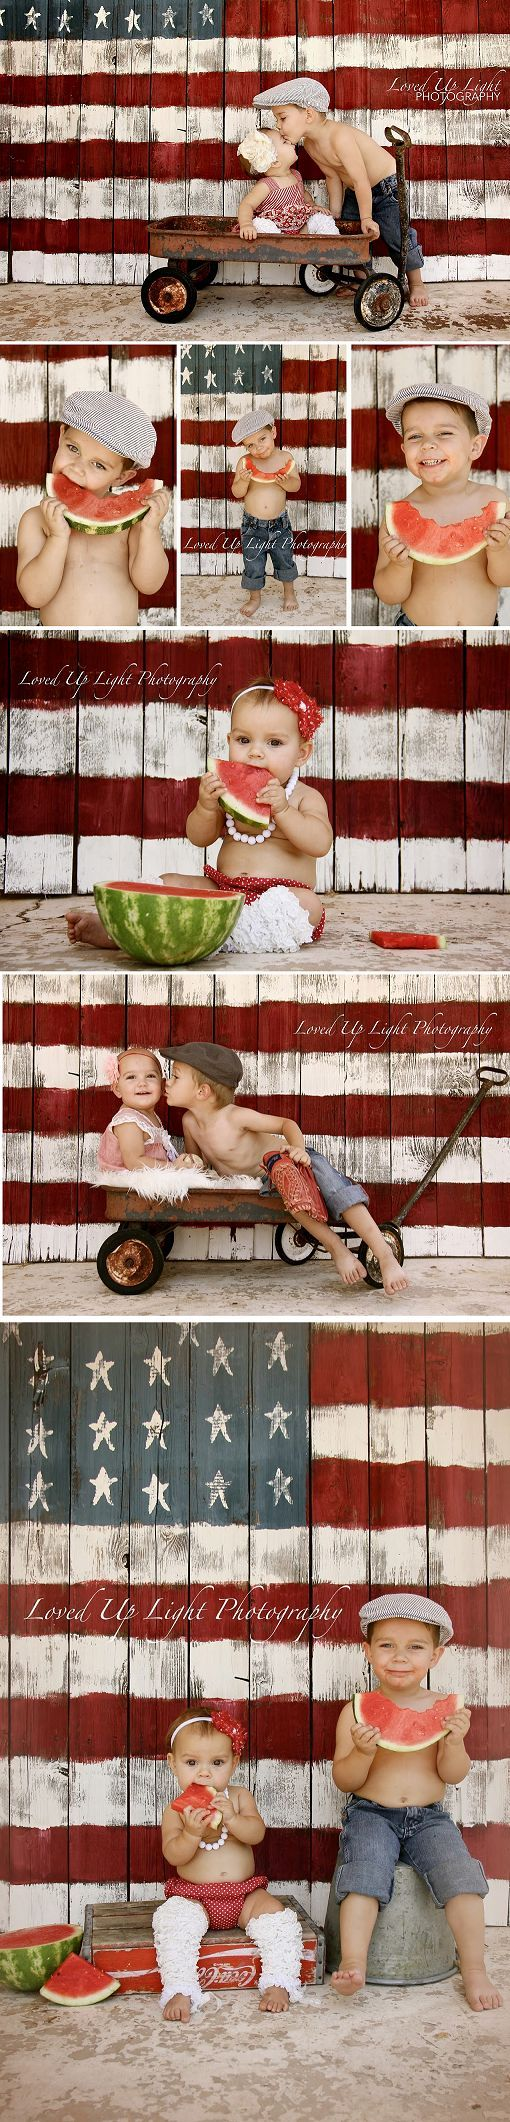 4th of july mini shoot Loved Up Light Photography: {Kids} Love this back drop!.. © Loved up Light Photography #4thofJuly #RedWhiteandBlue: